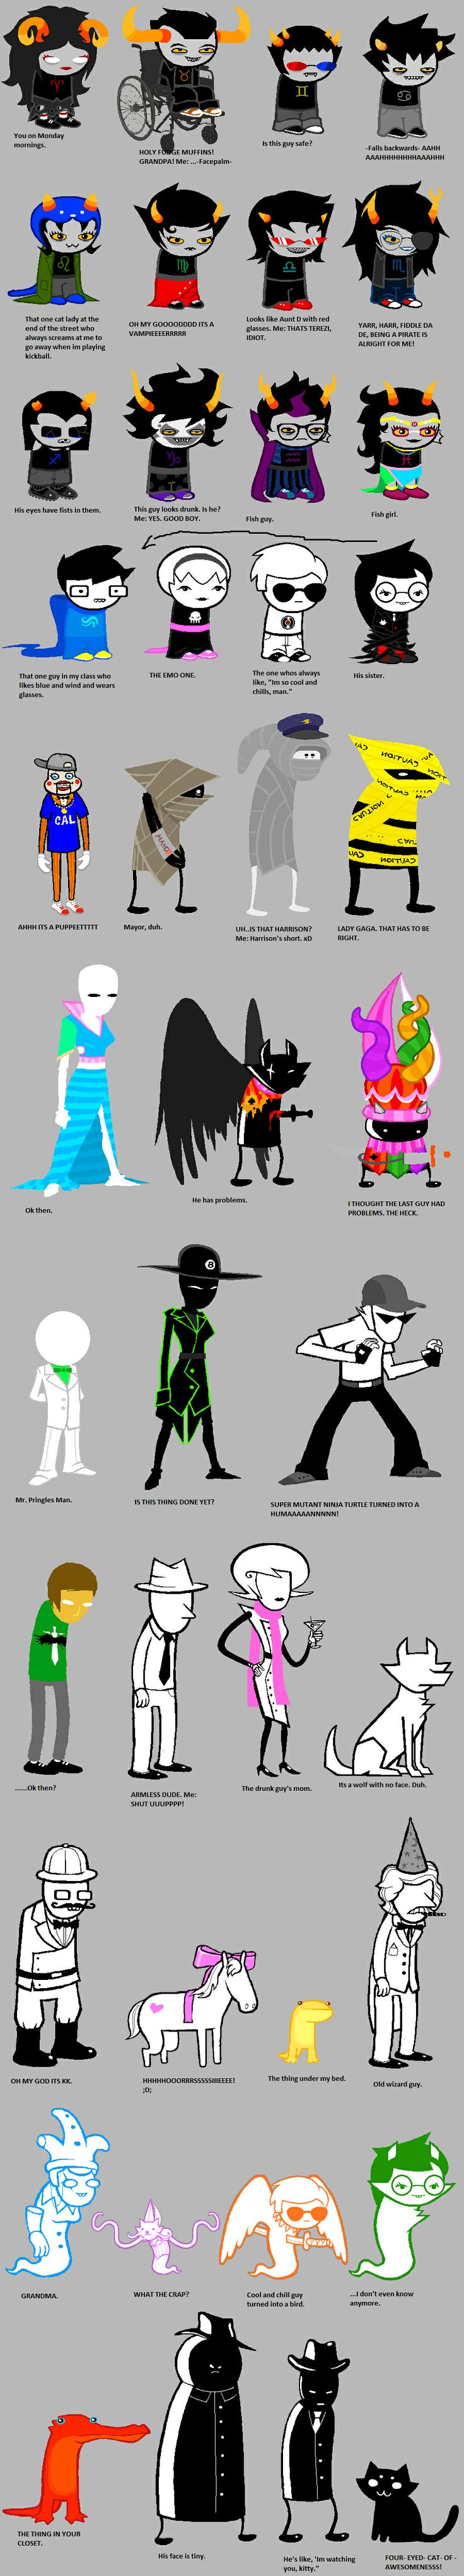 Homestuck according to non-Homestuck confused people LOL SO EPIC. I love how apparently Roxy is now Gamzee's mum. Because they look SO SIMILAR hahaha